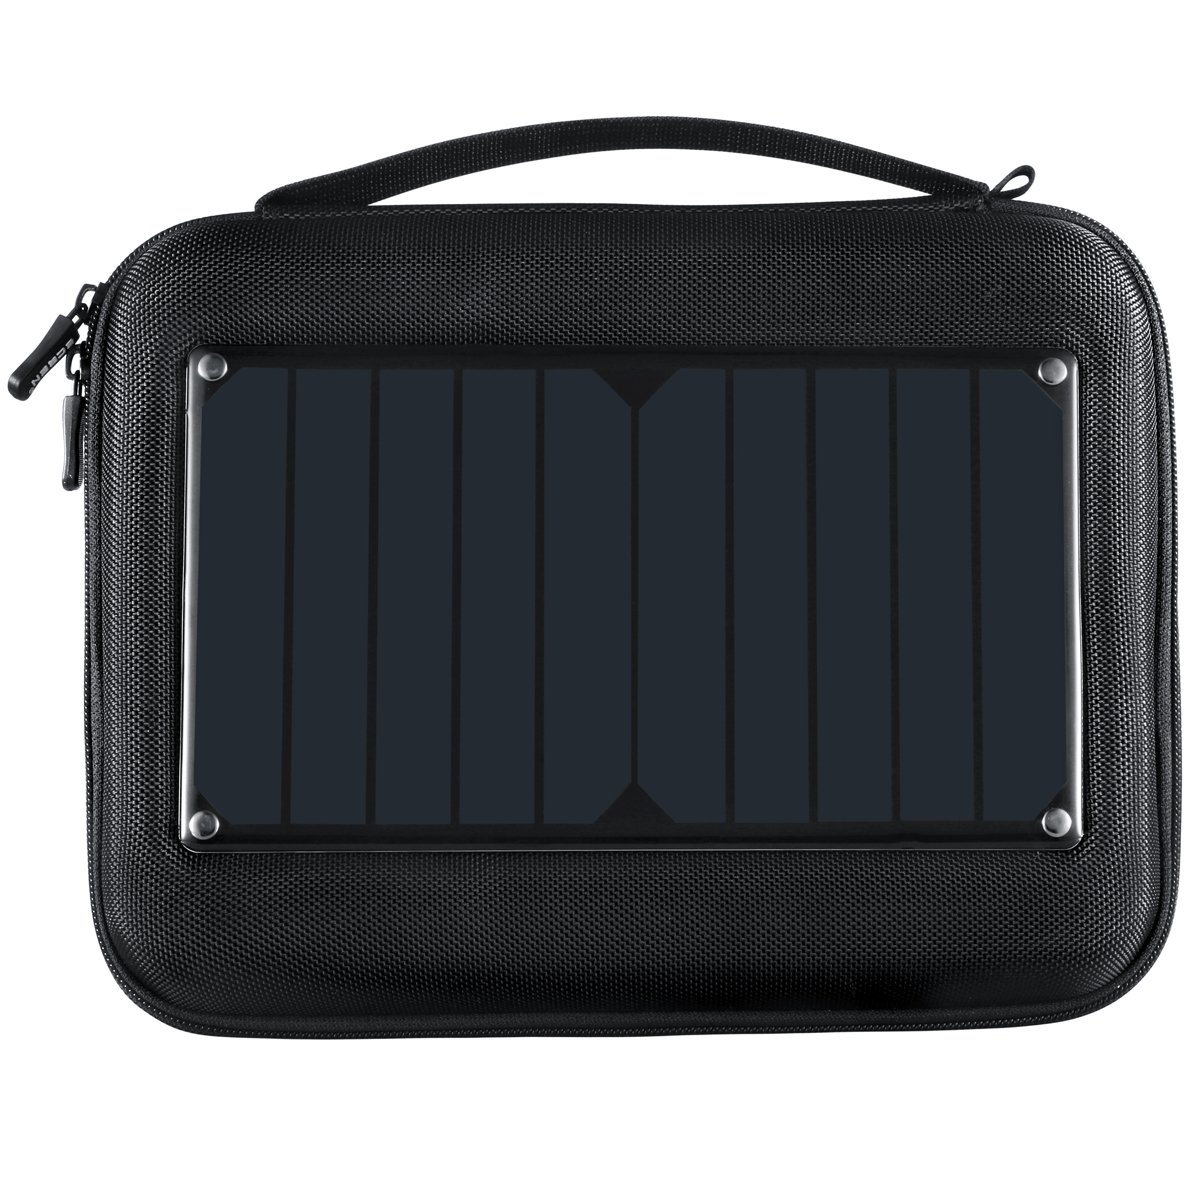 ECEEN Gopro Case with 5W Solar Panel Charger&5000mAH Battery Pack for Hero 4, 3+, 3, 2, Hard Shell Carrying Case with EVA Shockproof Foam, Ideal for Travel or Home Storage -Large for 2 GoPro cameras